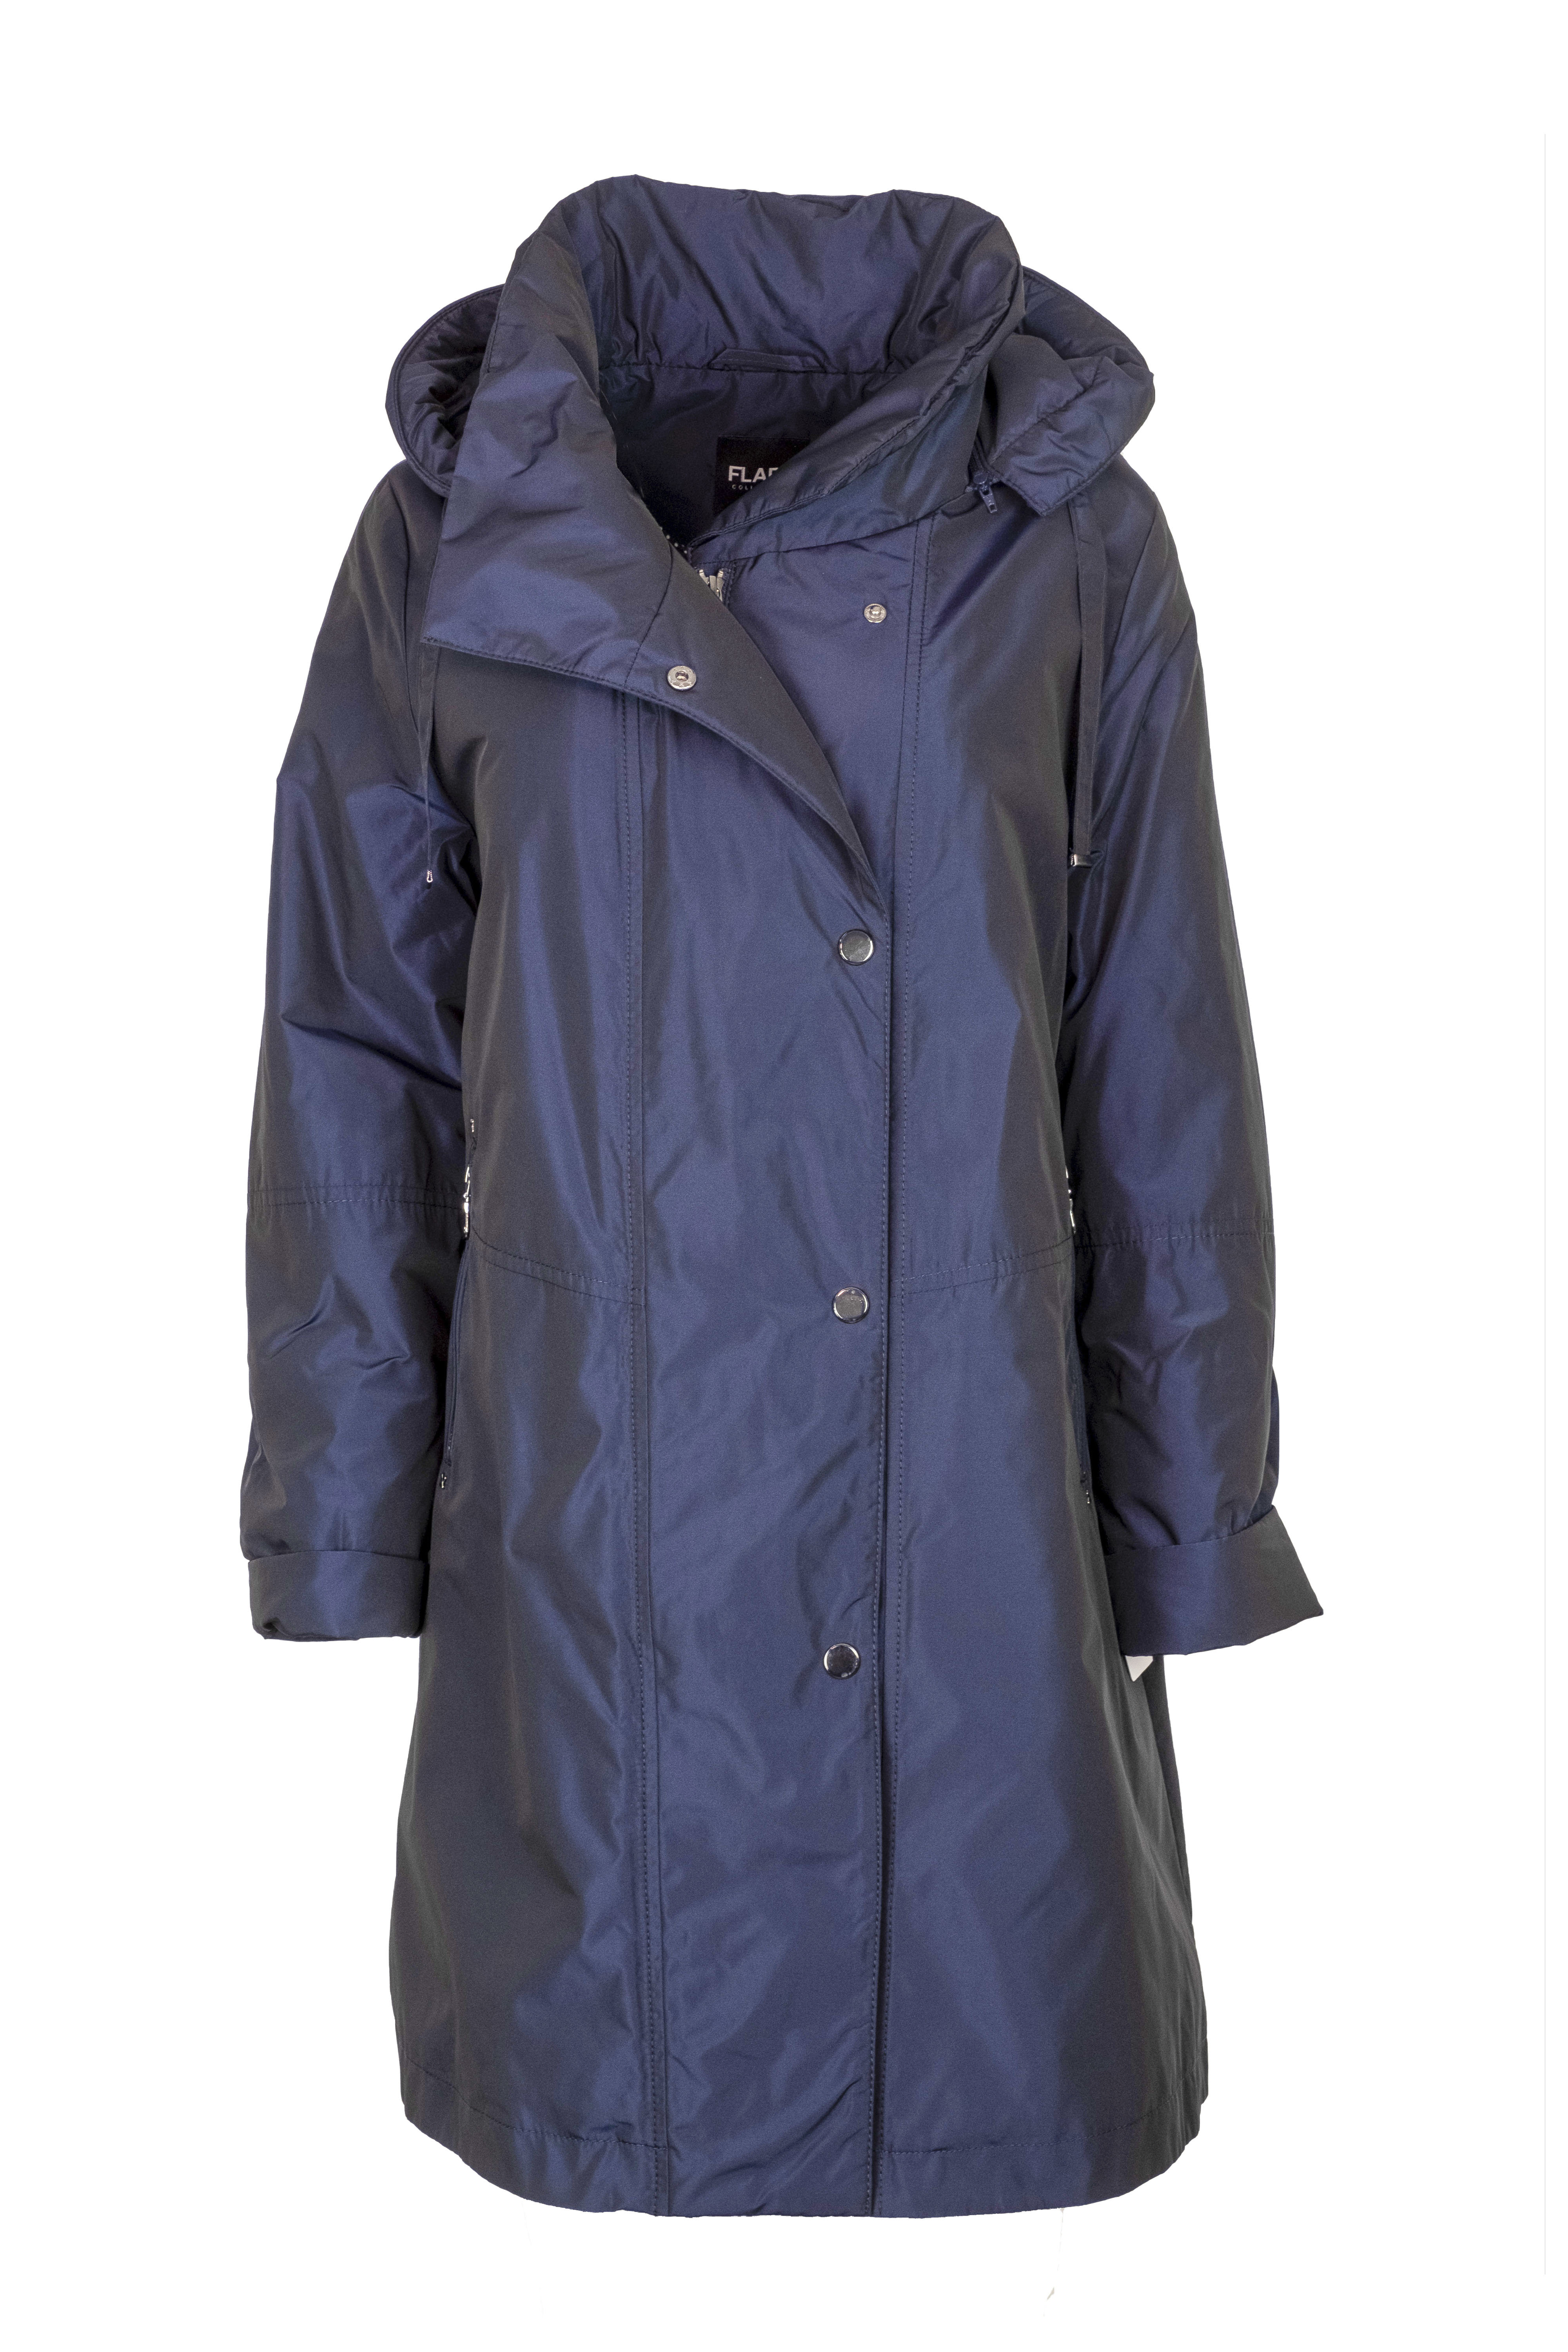 Flare Collection winterjas 3346 donkerblauw